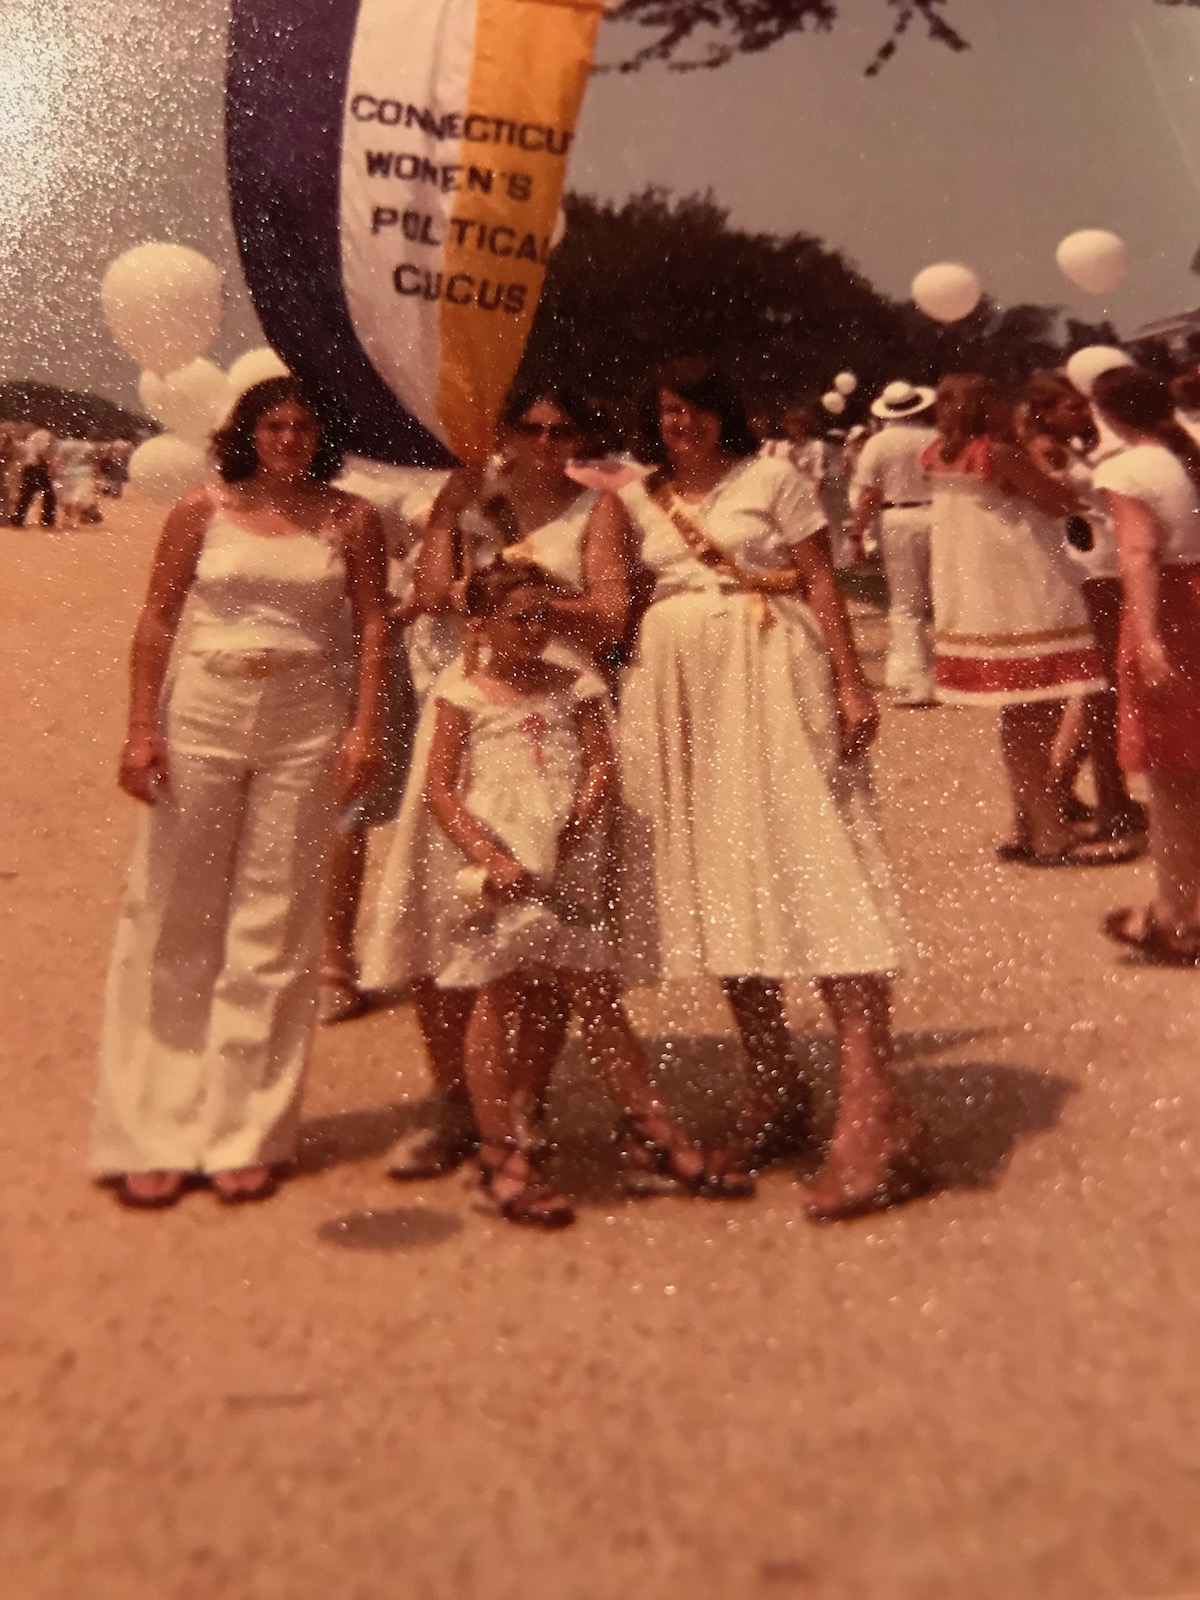 Becky, age 18, March on Washington for Equal Rights Amendment; July 9, 1978, with my mom, Flora Parisky and sister Jenn and Kath